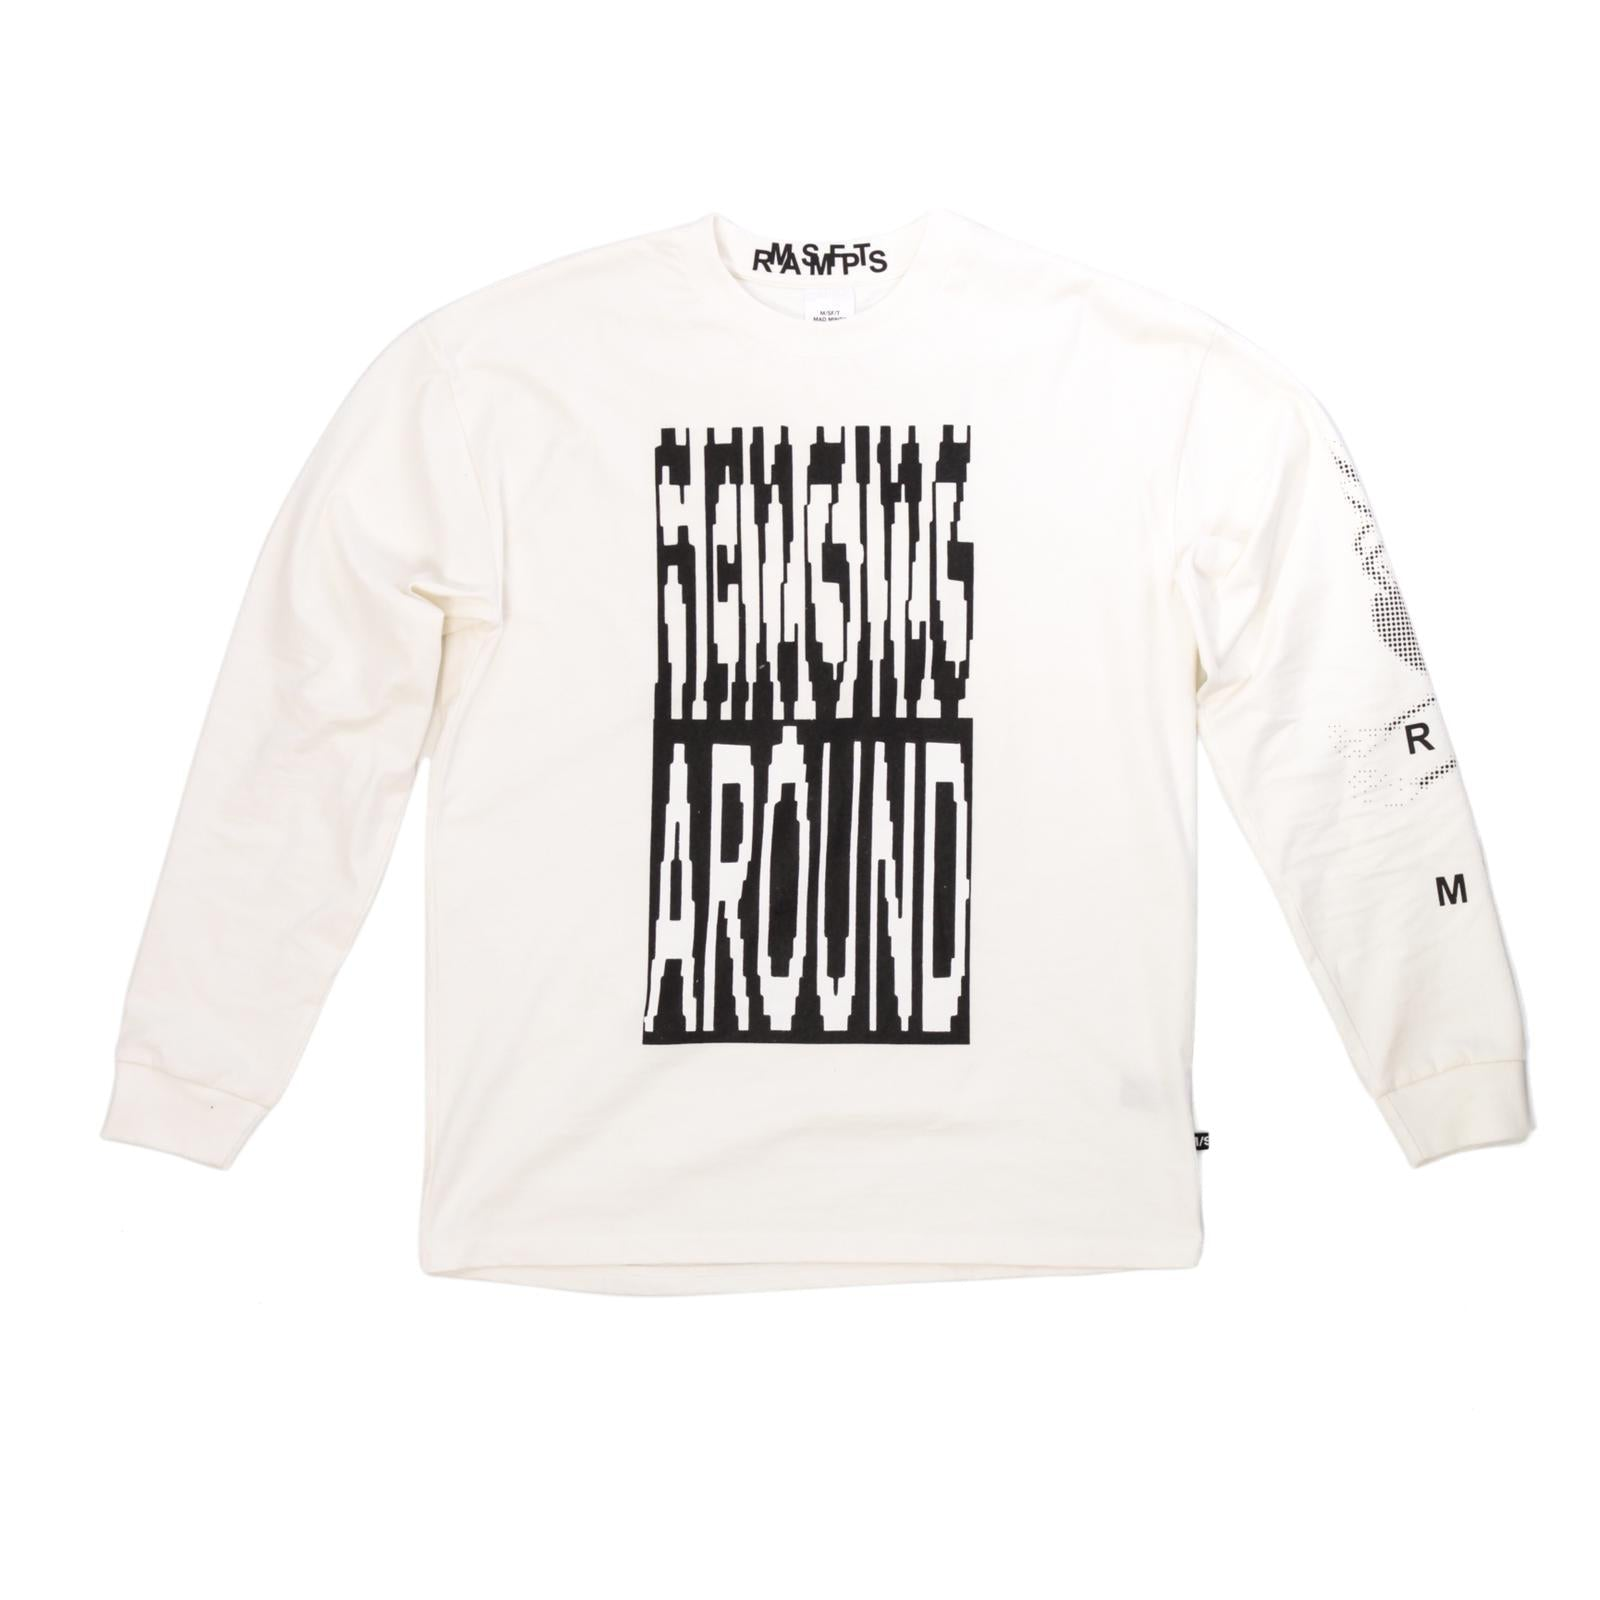 Ramps - Ramps x Misfits - Hanging Long Sleeve - White